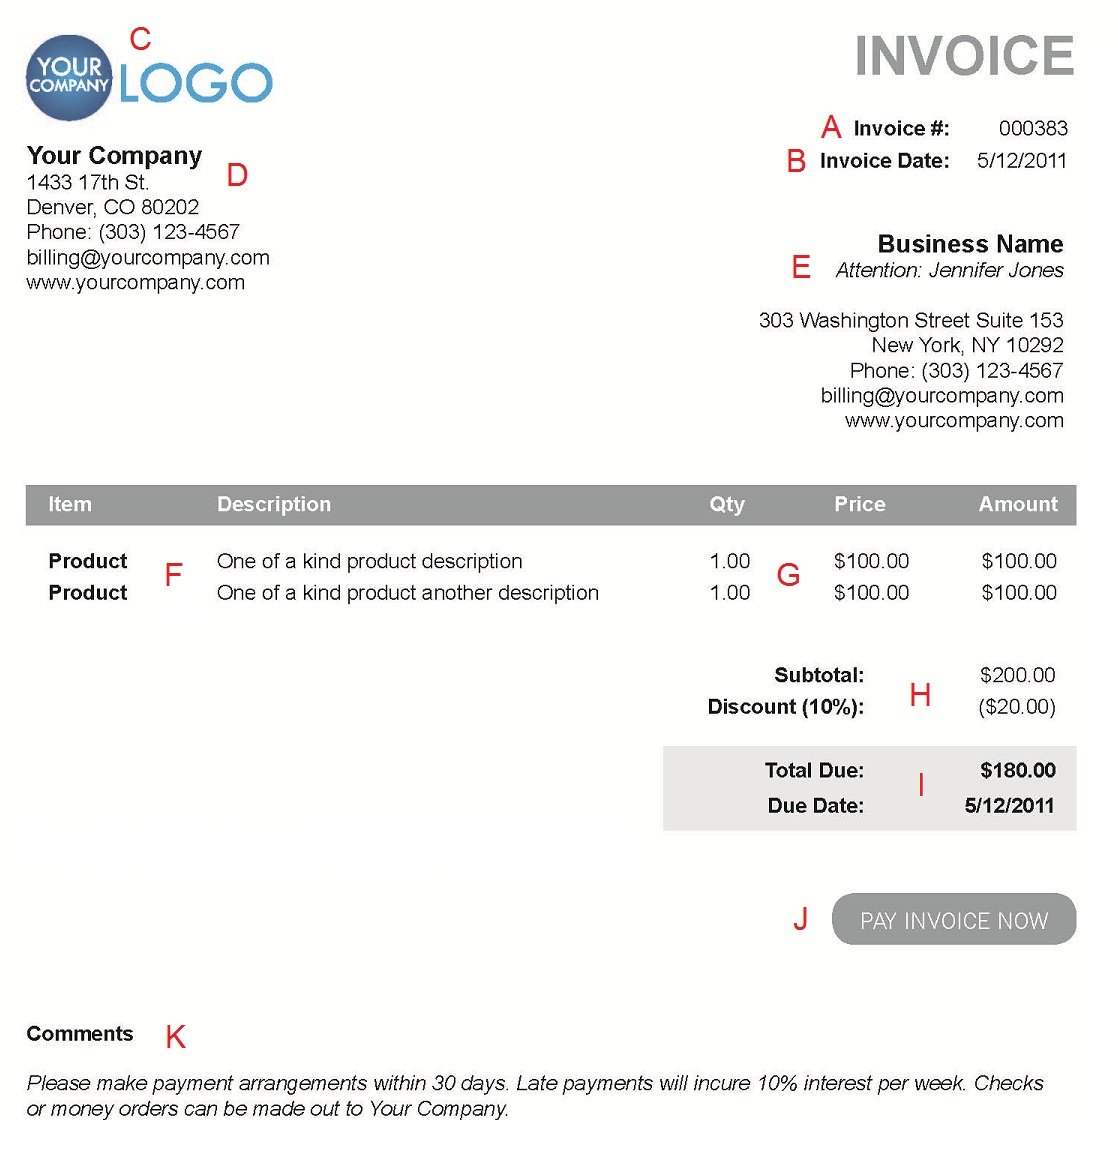 Ebitus  Inspiring The  Different Sections Of An Electronic Payment Invoice With Entrancing A  With Charming Vat Exempt Invoice Also Download Invoice Software In Addition Australian Tax Invoice Template And Logo Invoice As Well As Debit Note Invoice Additionally What Is Invoice Payment From Paysimplecom With Ebitus  Entrancing The  Different Sections Of An Electronic Payment Invoice With Charming A  And Inspiring Vat Exempt Invoice Also Download Invoice Software In Addition Australian Tax Invoice Template From Paysimplecom